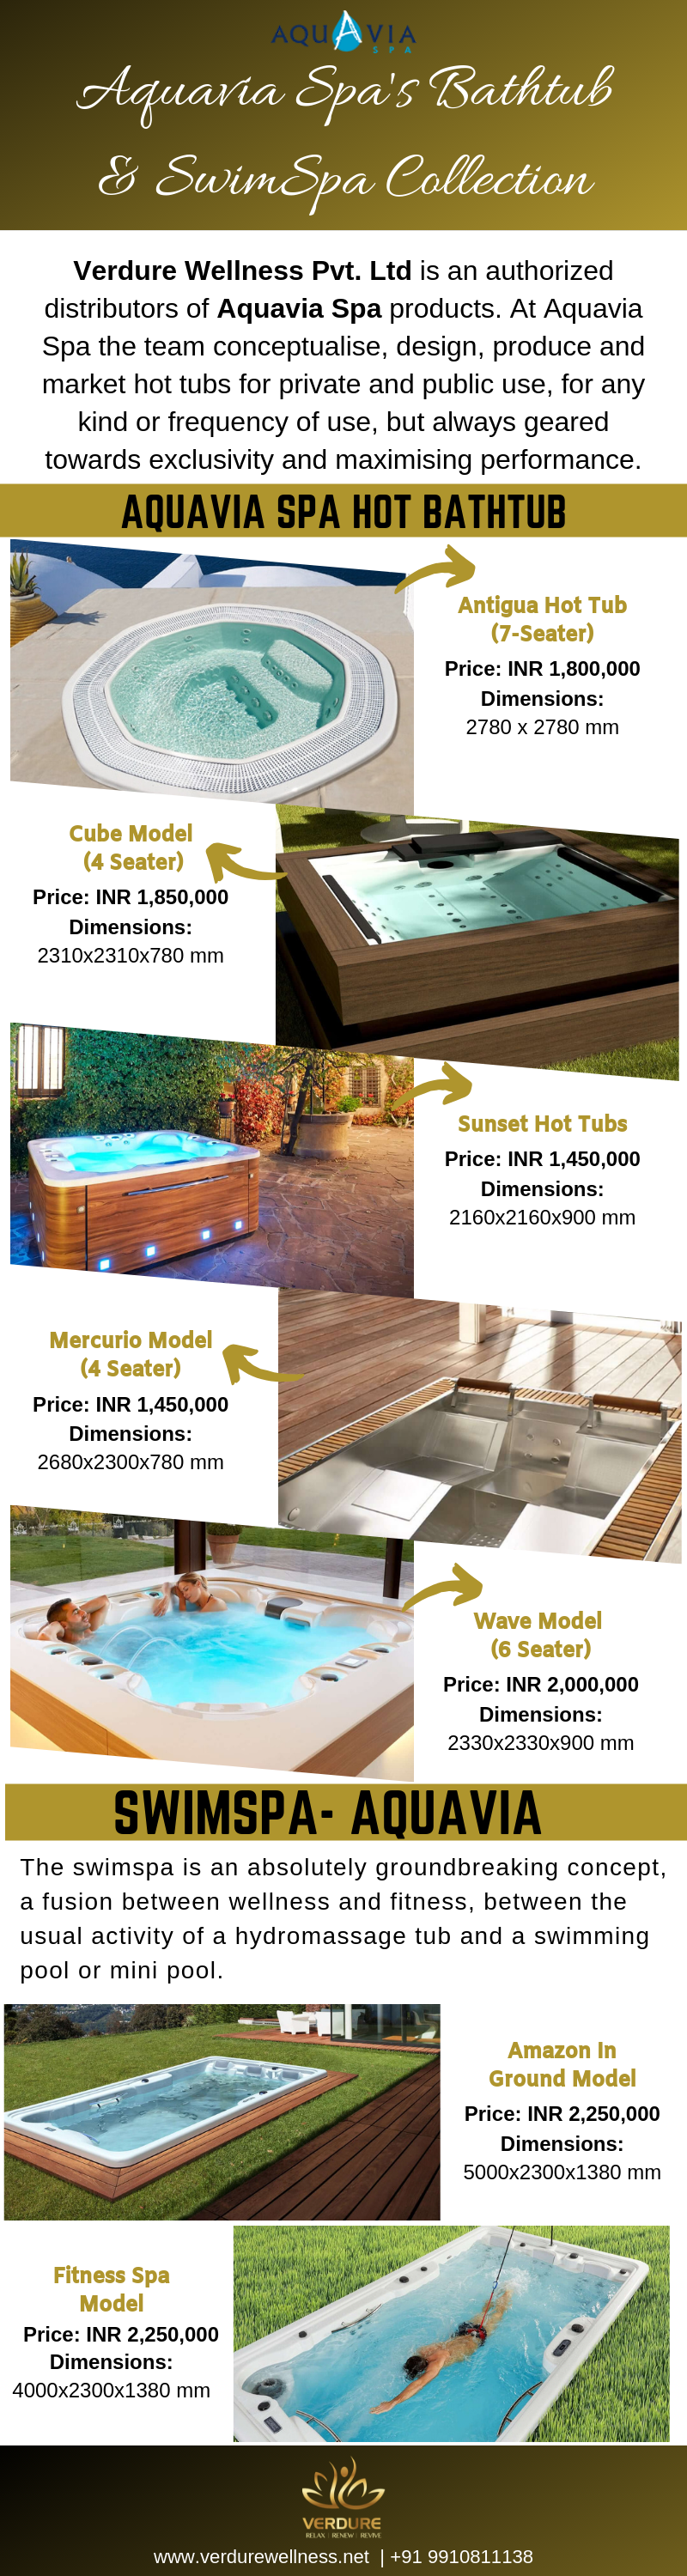 Aquavia Jacuzzi tub Spa Collection - Verdure Wellness